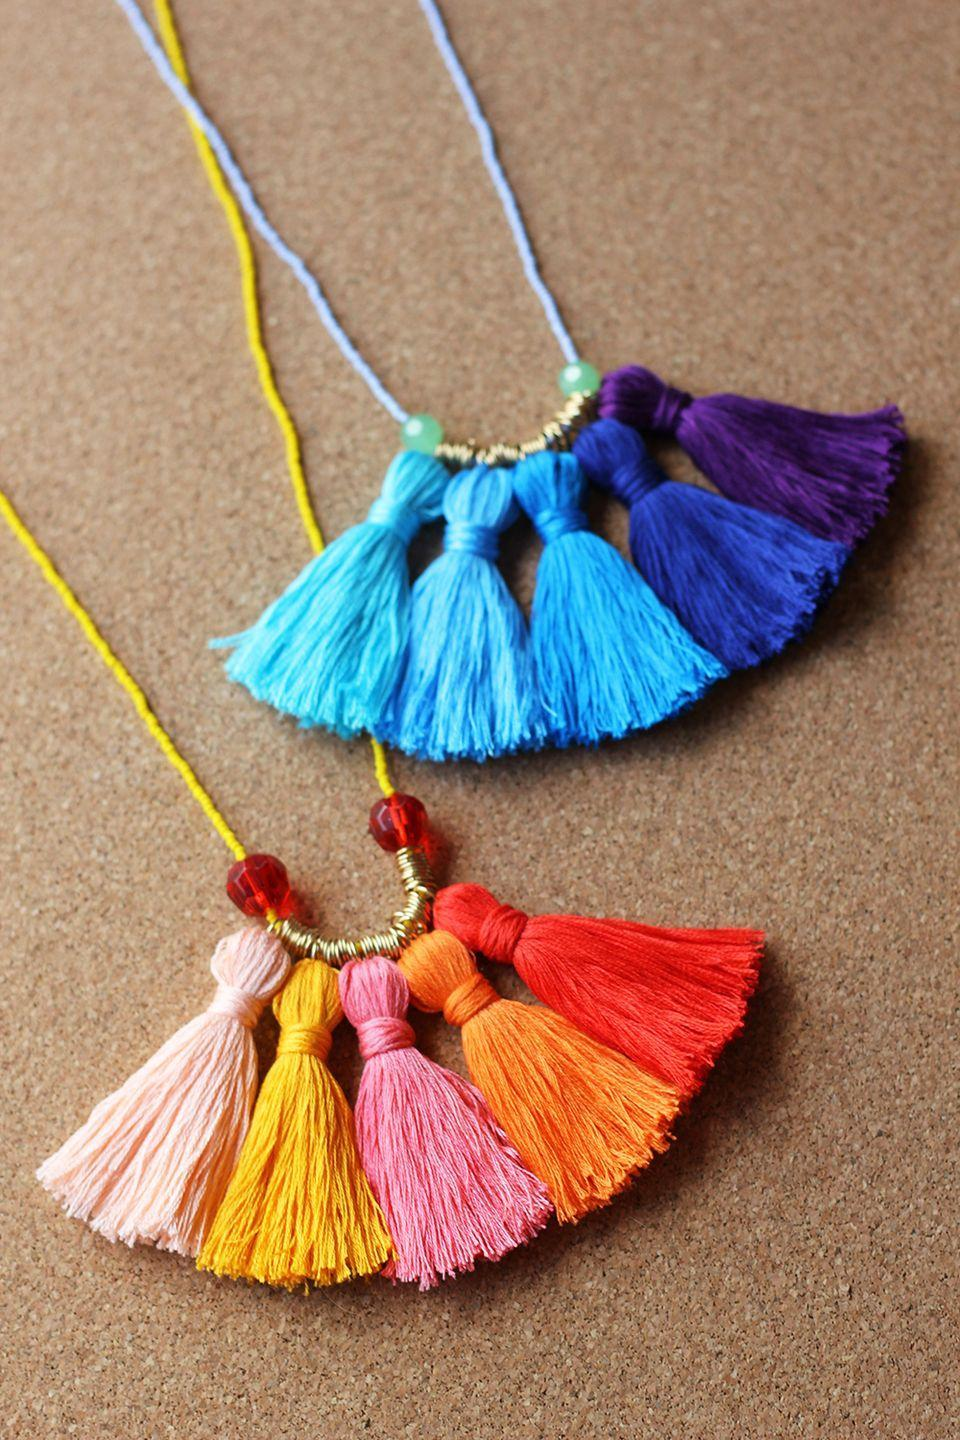 """<p>Make a statement with a colorful accessory that's party-ready. This blogger recommends using a needle to comb through the tassels after wearing to keep them neat and full. </p><p><em><a href=""""http://www.homemadebanana.com/diy-ombre-tassel-necklace/"""" rel=""""nofollow noopener"""" target=""""_blank"""" data-ylk=""""slk:Get the tutorial at Homemade Banana »"""" class=""""link rapid-noclick-resp"""">Get the tutorial at Homemade Banana »</a></em><br></p>"""